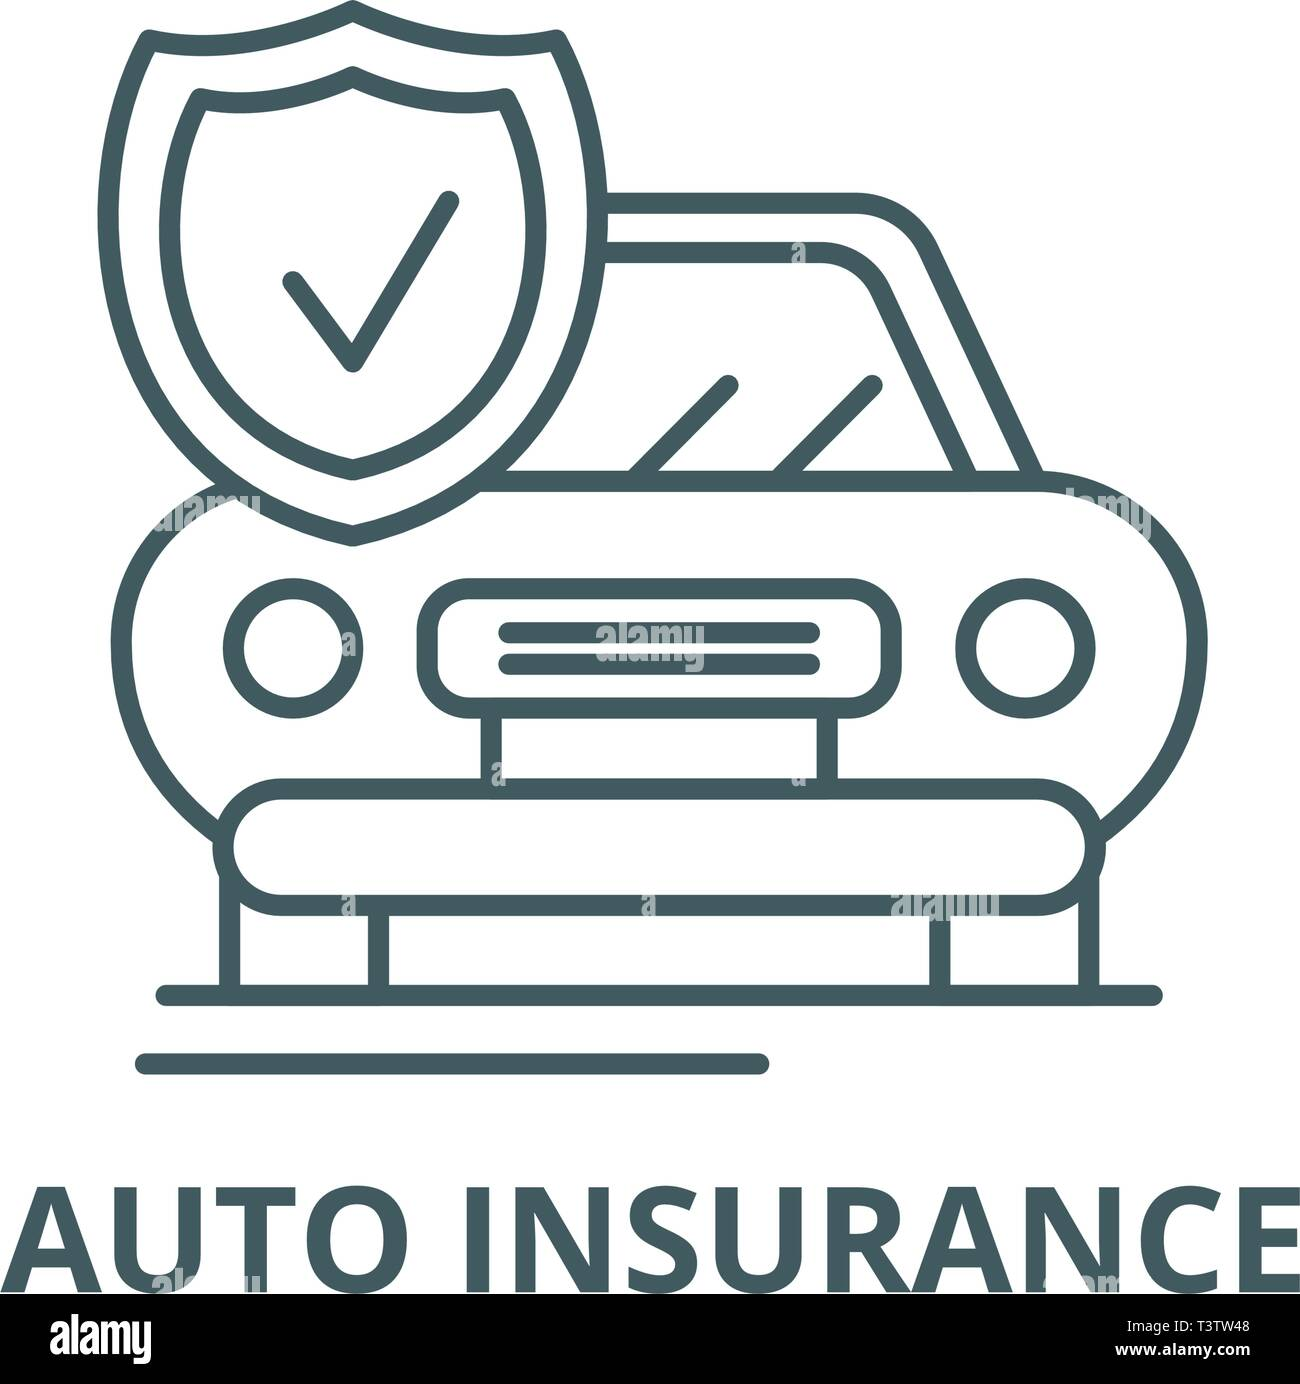 Auto insurance line icon, vector. Auto insurance outline sign, concept symbol, flat illustration Stock Vector